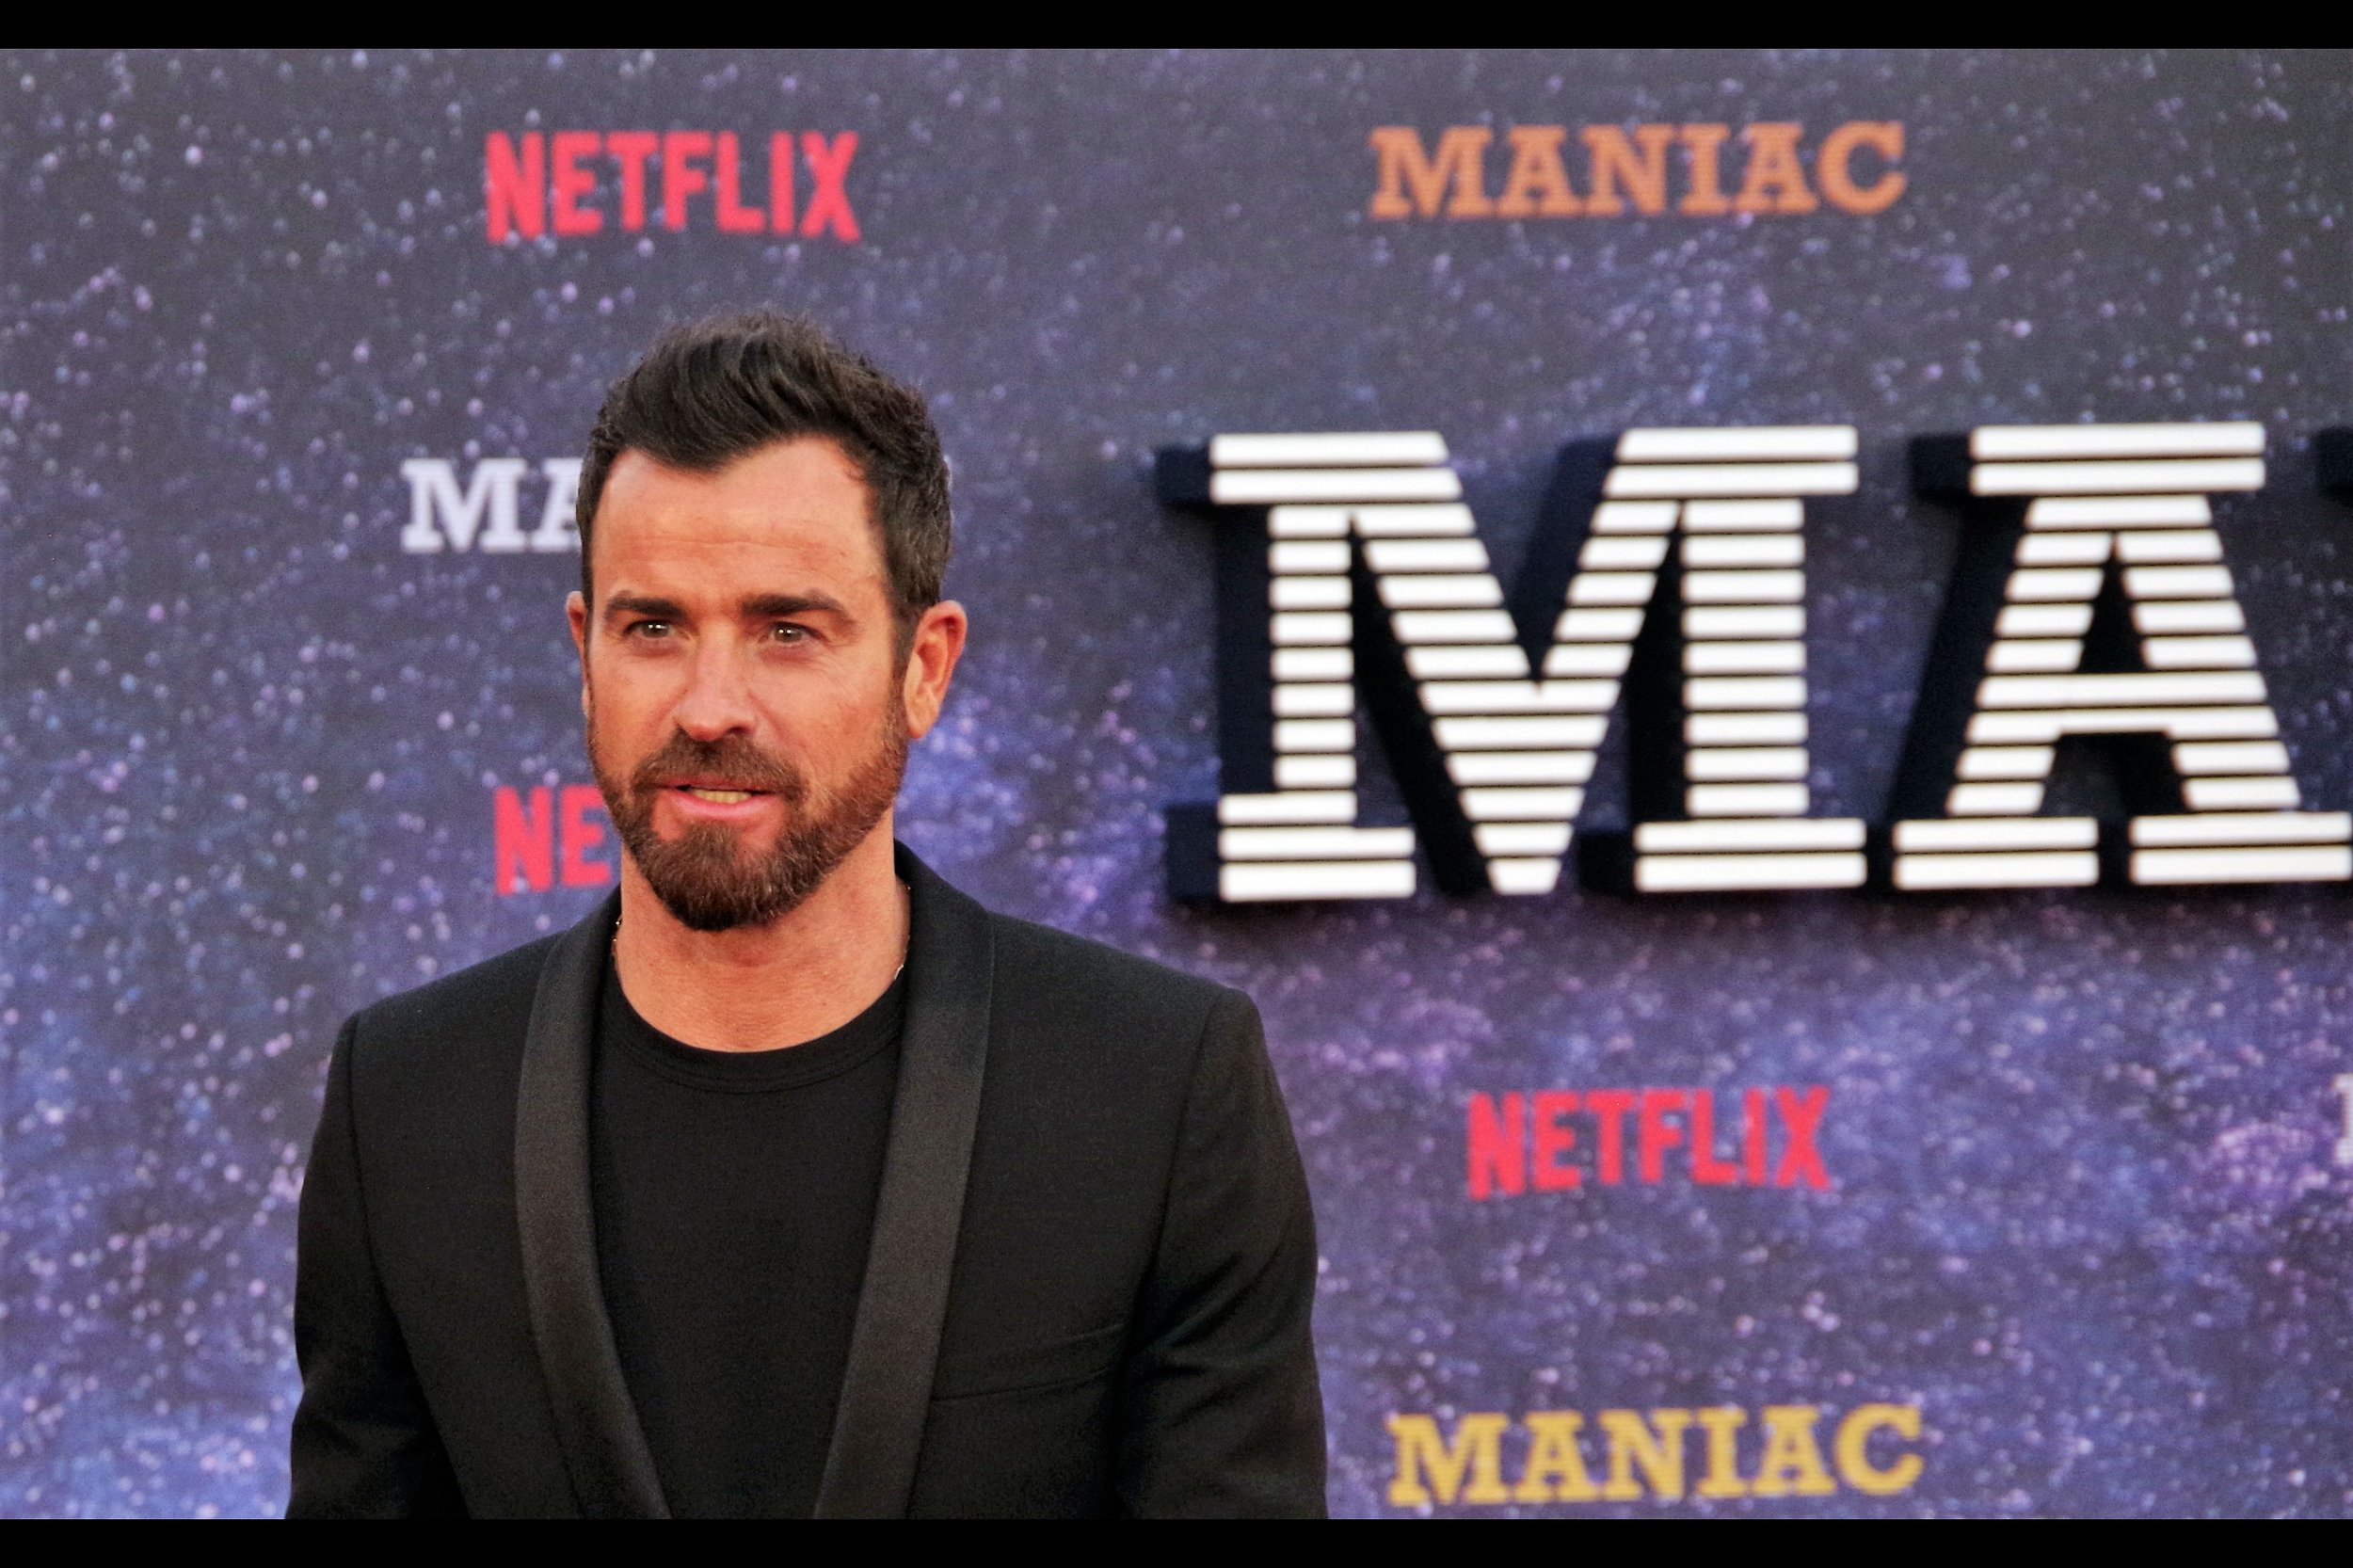 Justin Theroux is in this movie. I suppose there's a chance that's of interest.